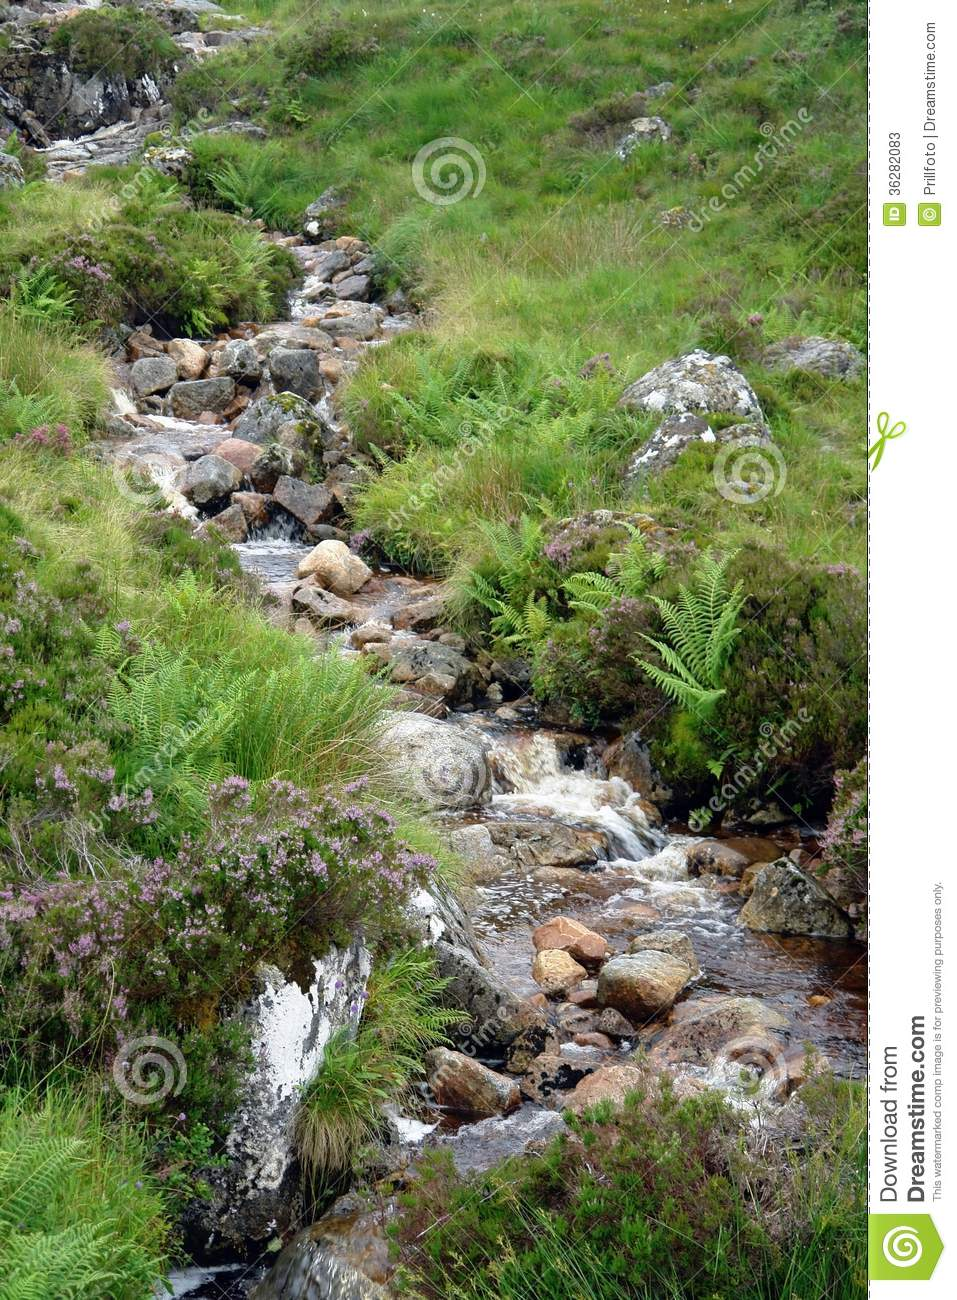 Photos Of Small Living Rooms Decorated: Small Stream With Pebbles Stock Photos